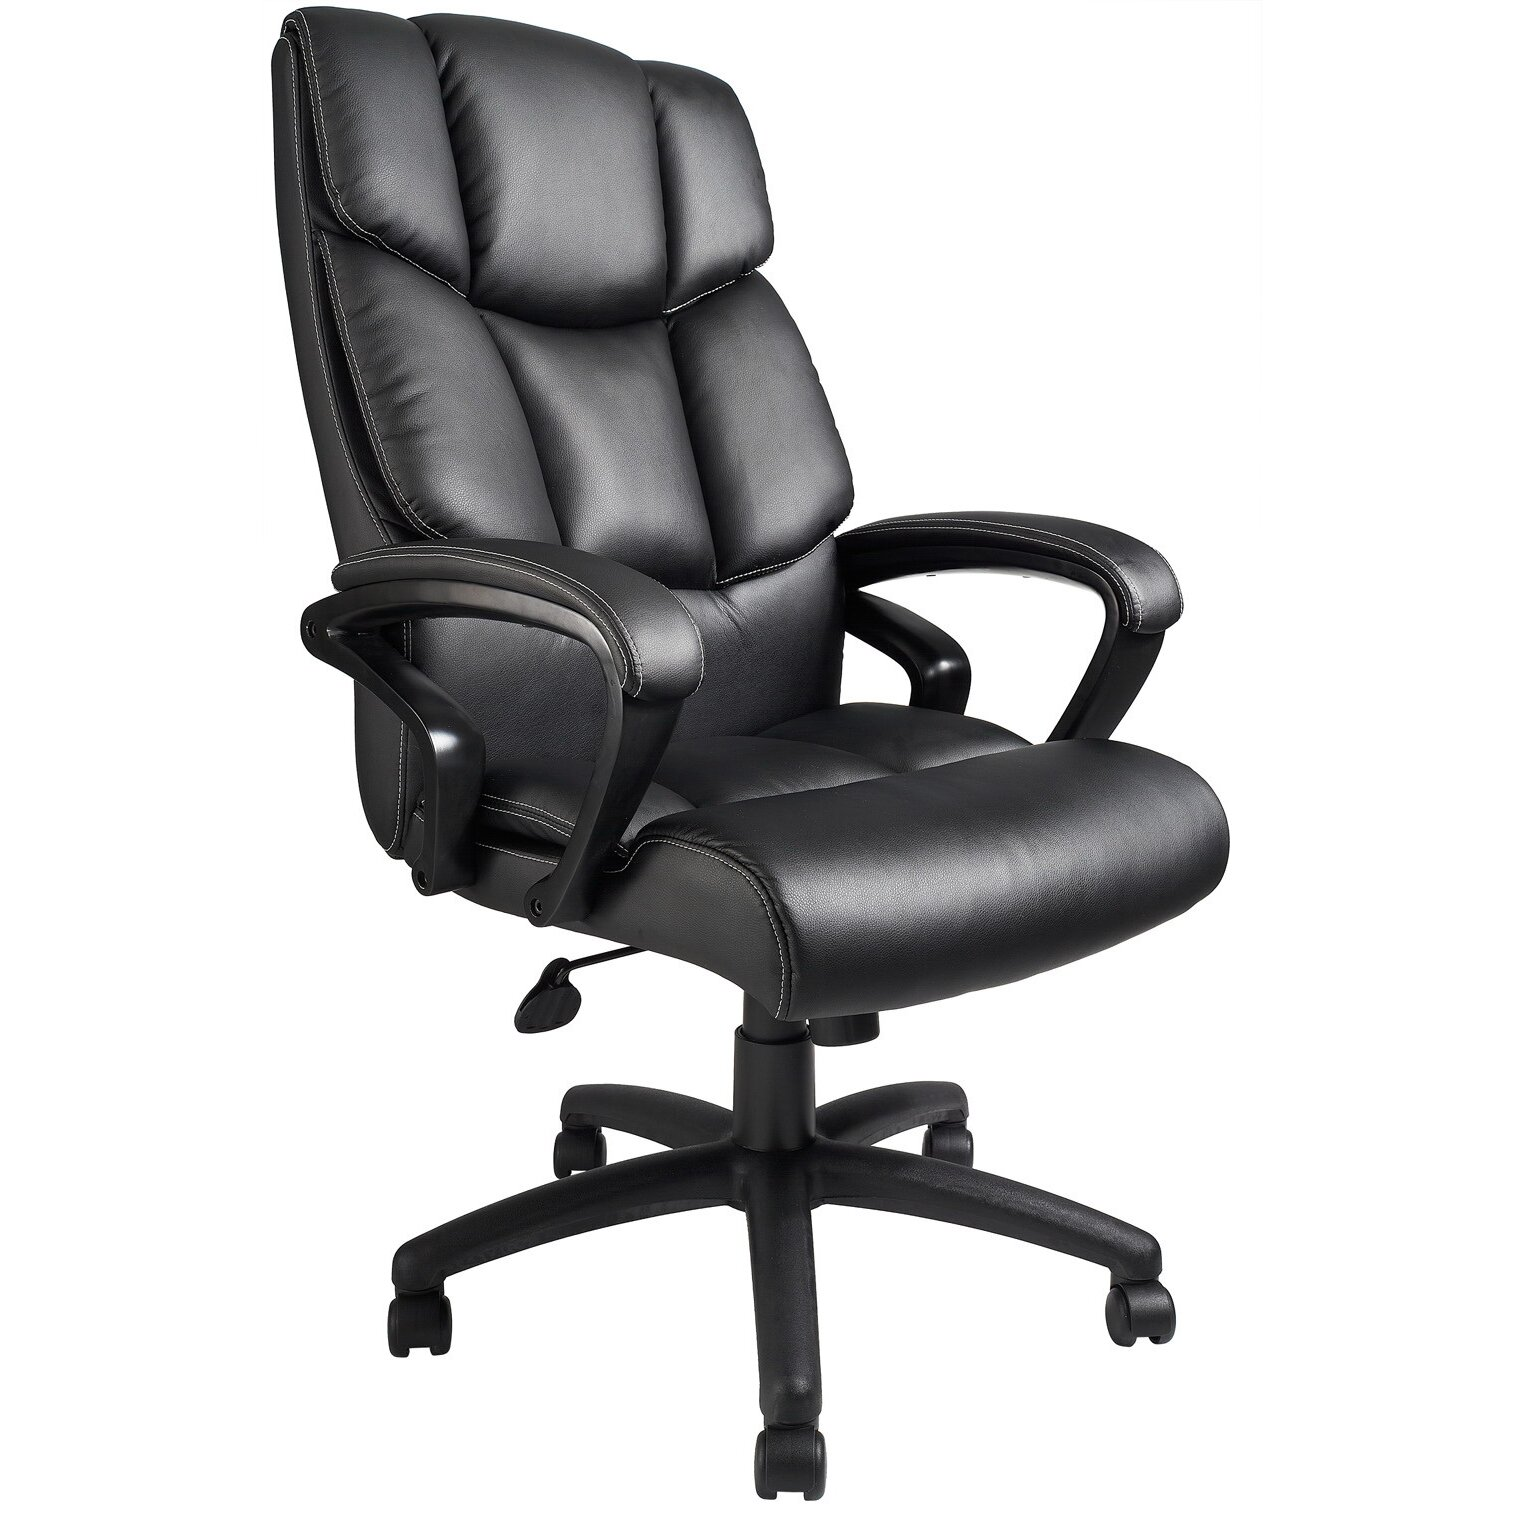 boss office products adjustable high back leather executive chair reviews wayfair. Black Bedroom Furniture Sets. Home Design Ideas